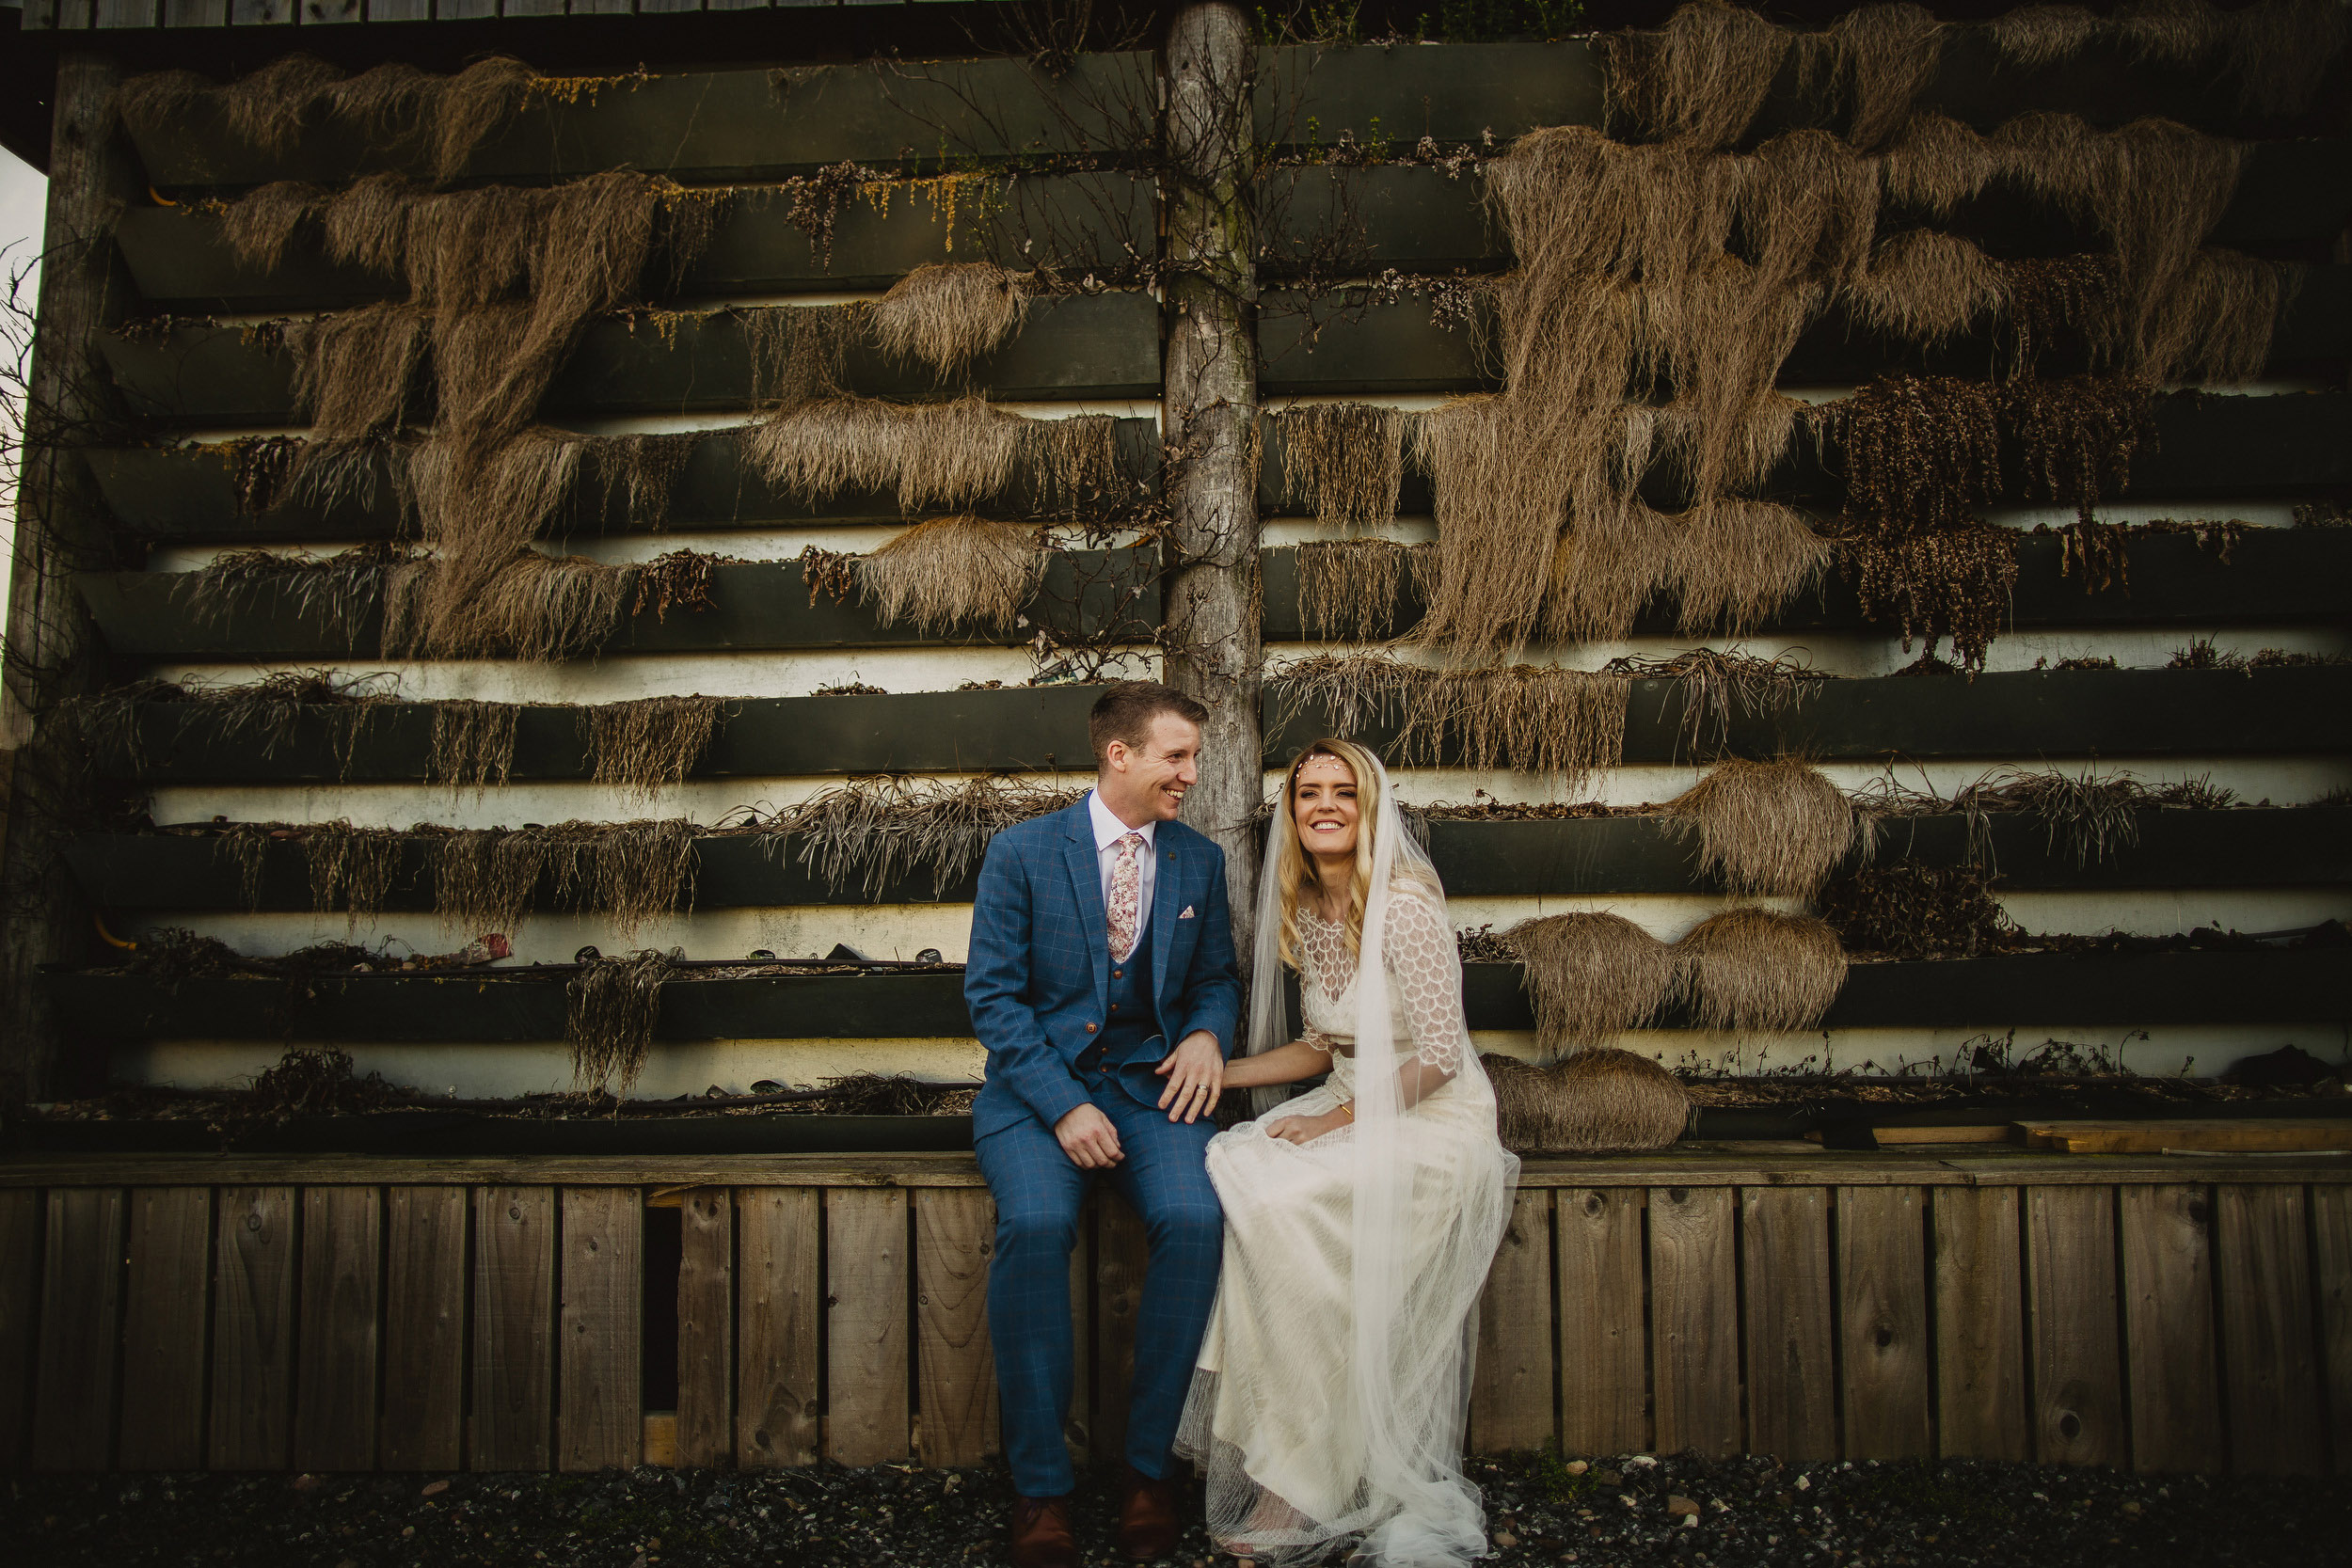 Gemma-Bohemian-Outdoor-Tipi-Wedding-Laid-Back-Relaxed-Family-Wedding-Kate-Beaumont-Astilbe-by-S6-Photography-Sheffield-46.jpg